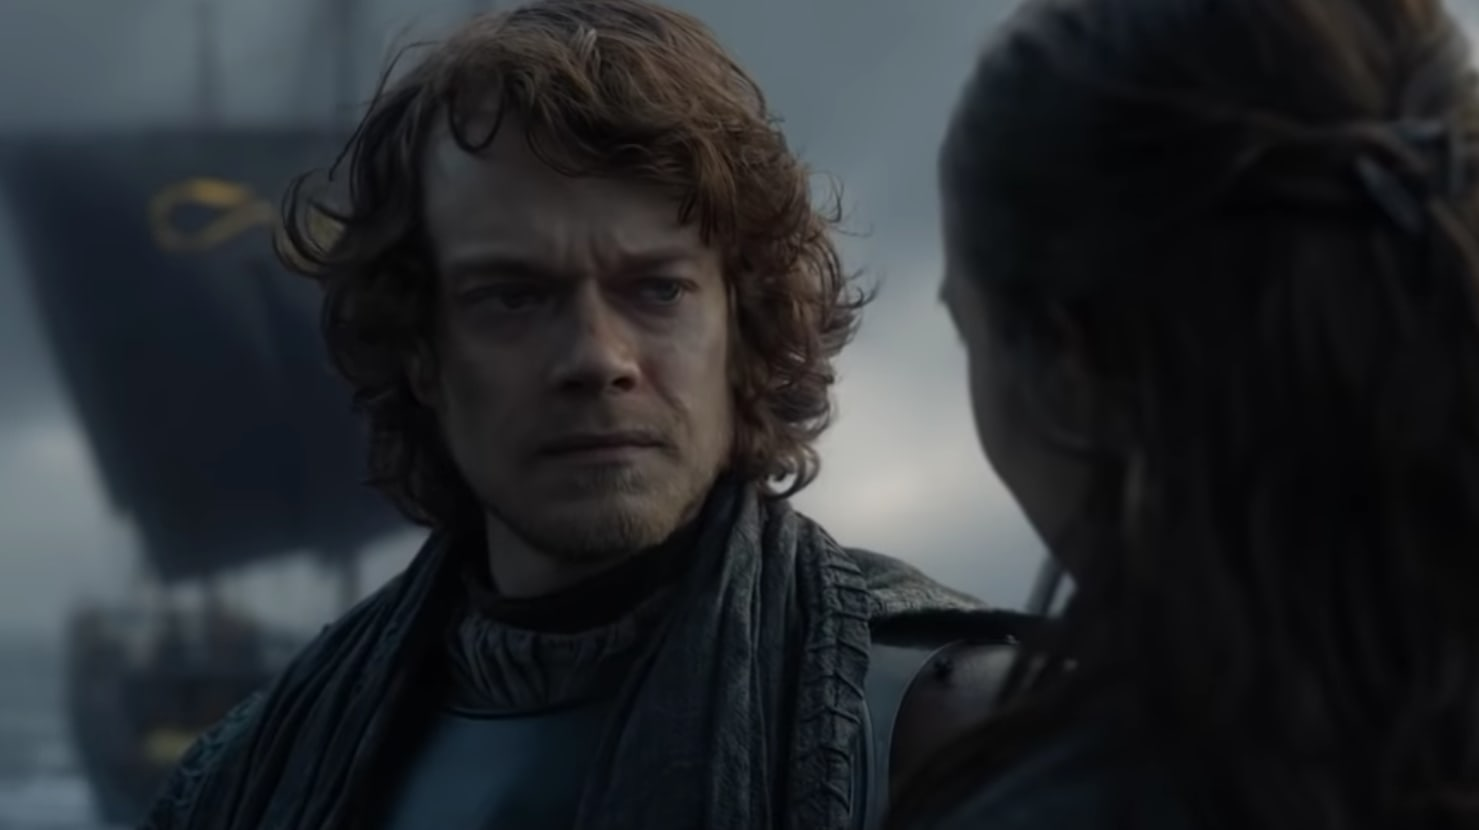 'Game of Thrones' Fan Predicts Major Scene for Jon Snow and Theon Greyjoy in Next Episode